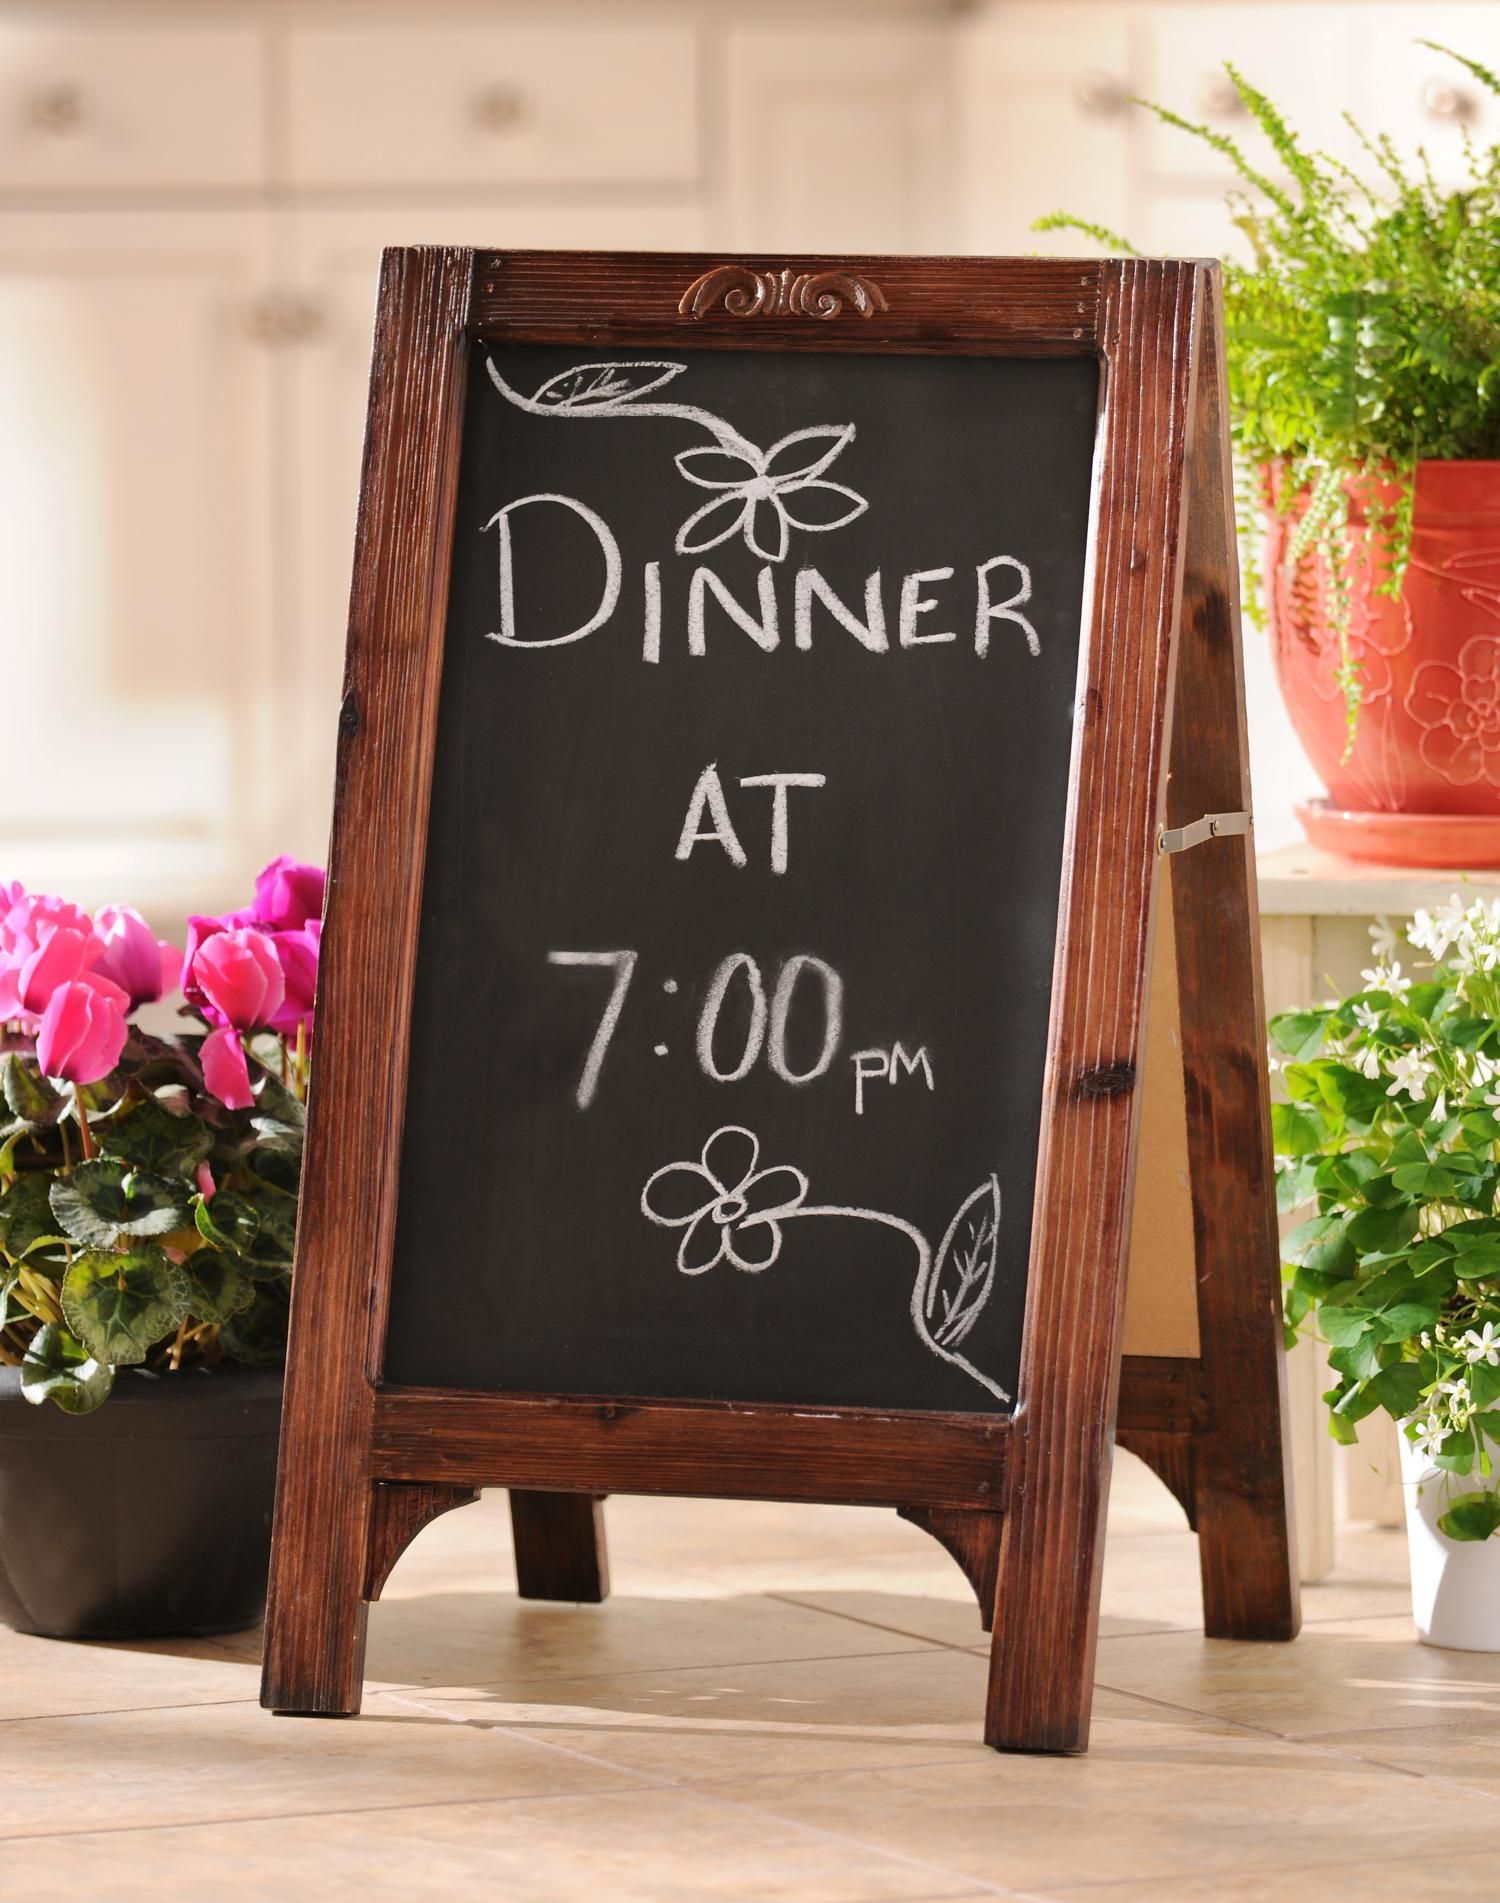 Chalkboard Easel | Chalkboard easel, Framed chalkboard, Easel on Easel Decorating Ideas  id=44219